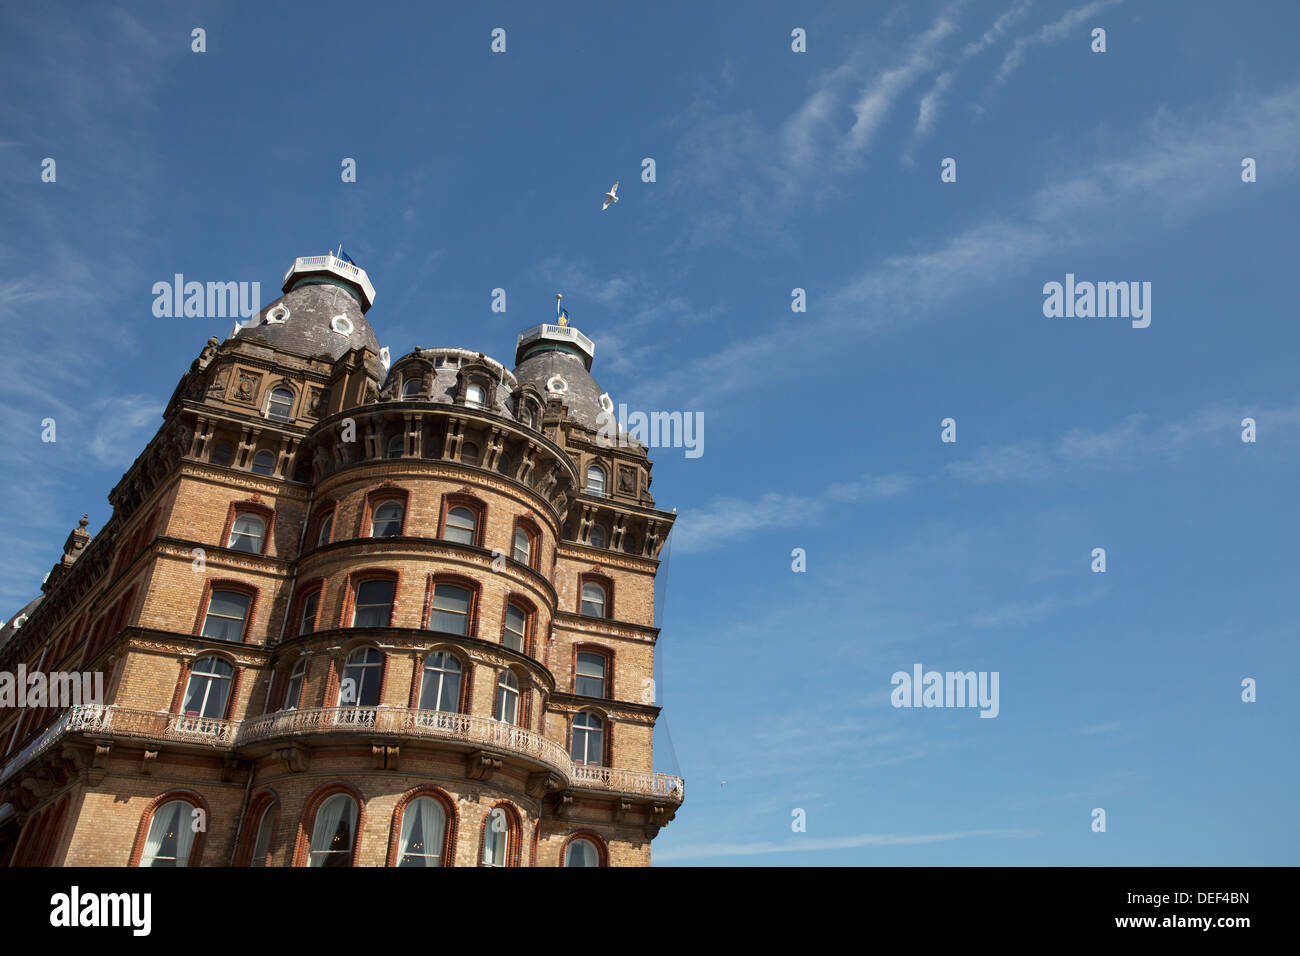 The Grand Hotel, Scarborough, North Yorkshire - Stock Image